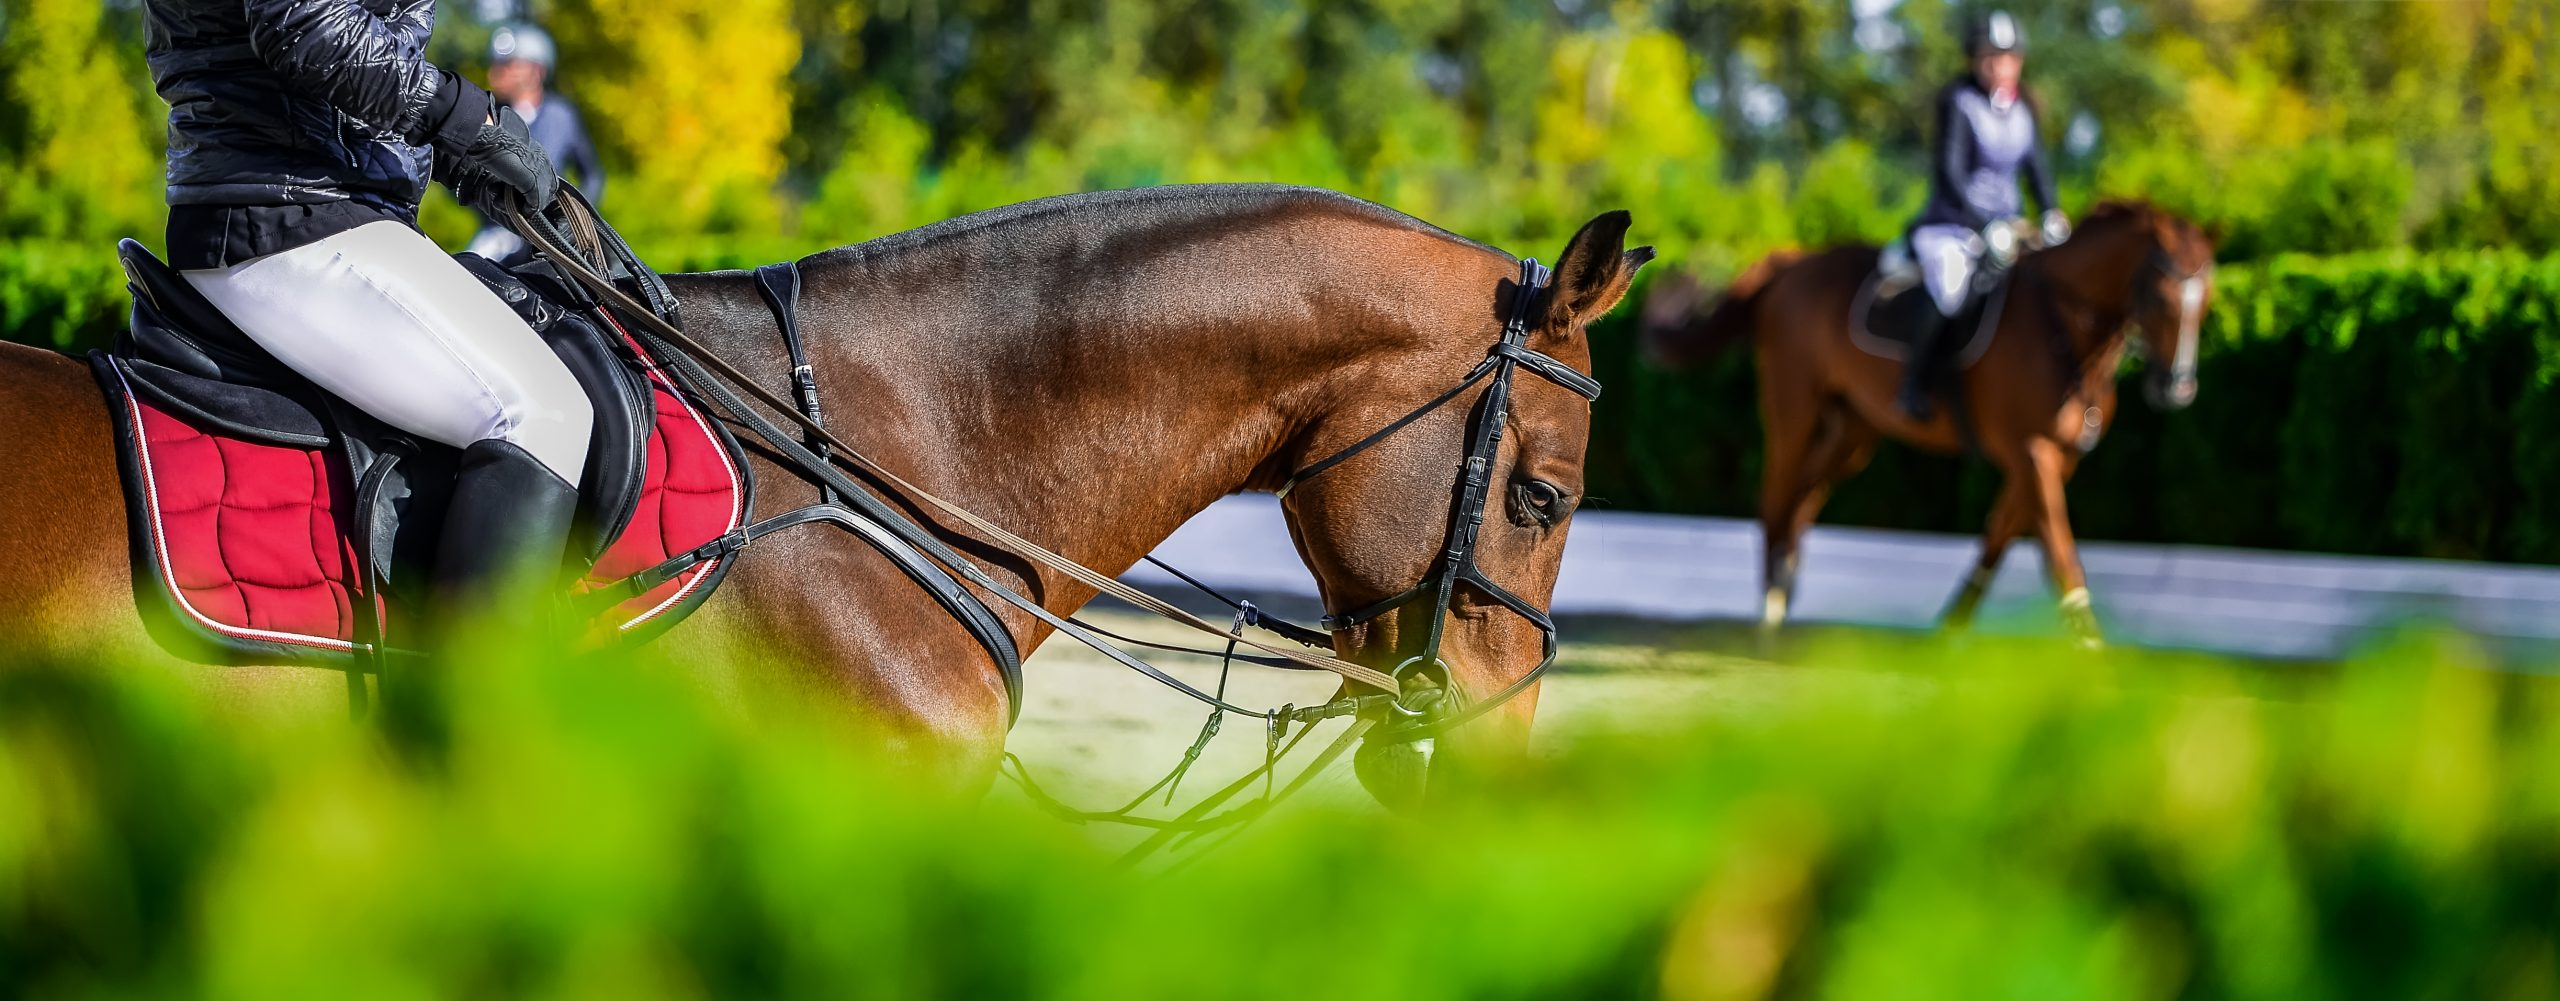 Horse Riding Exercises On Improving Riding Aids Horse Riding Network